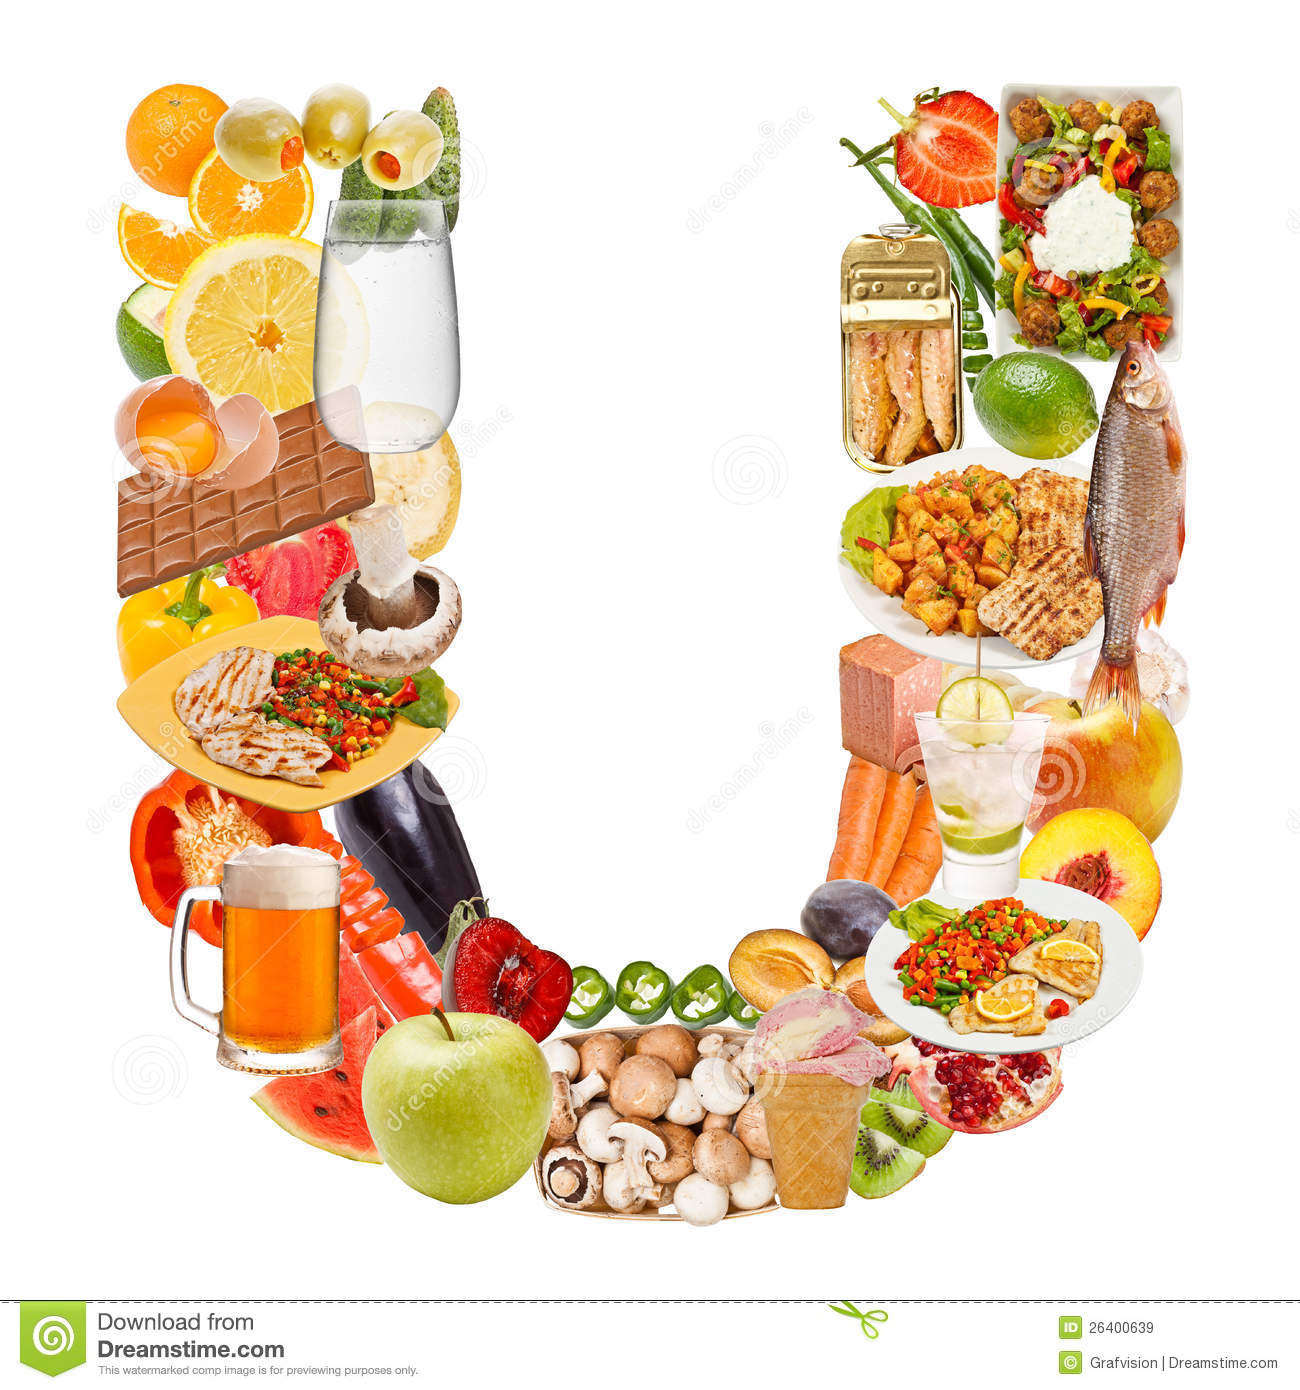 Healthy Foods Starting With The Letter I